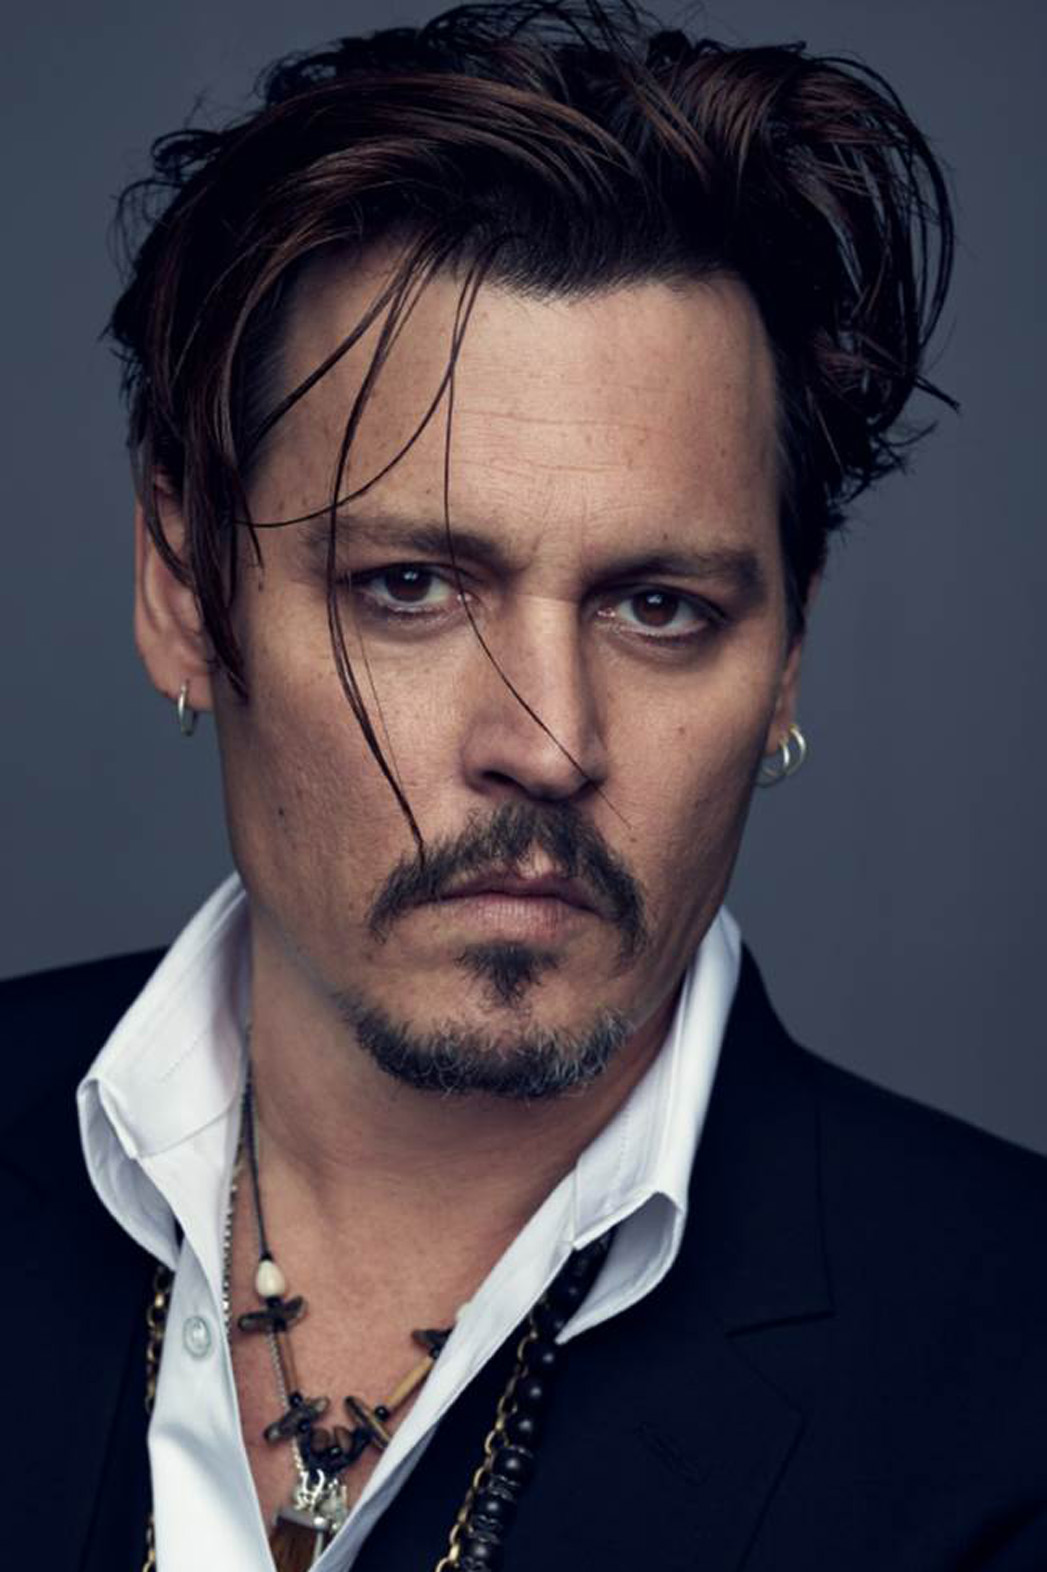 Johnny Depp Is Face of Christian Dior Parfums | Hollywood Reporter